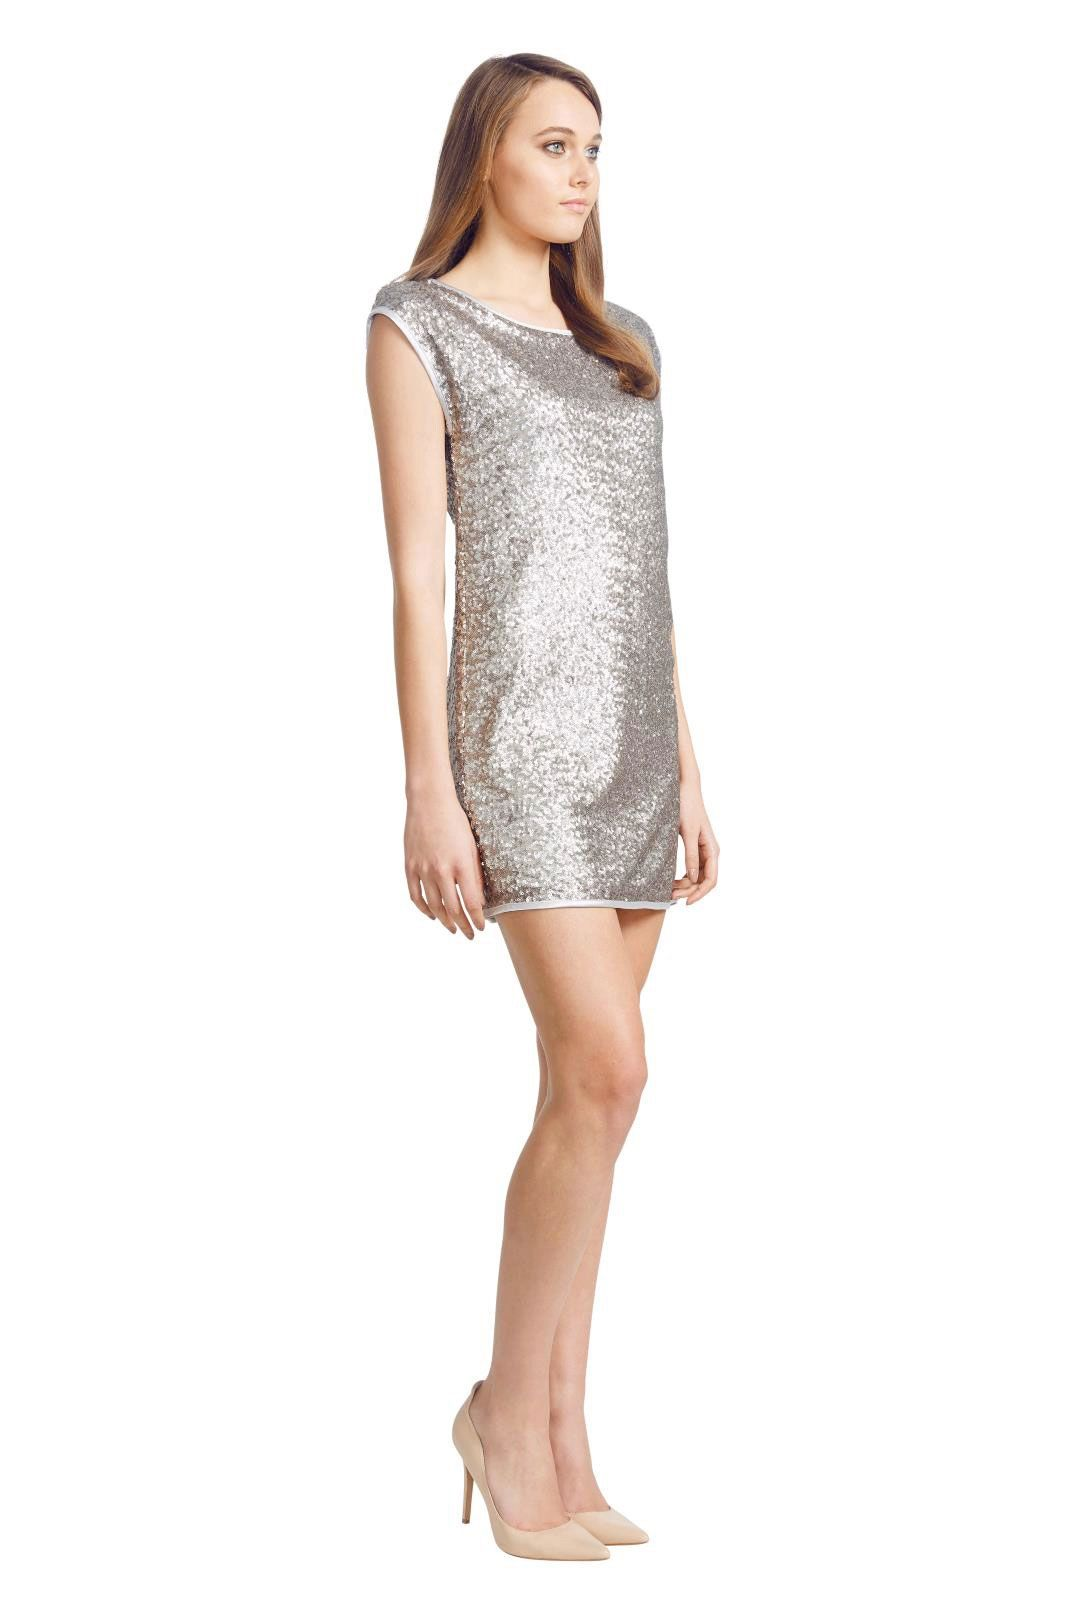 Wayne Cooper - Scoop Neck Dress - Silver - Front